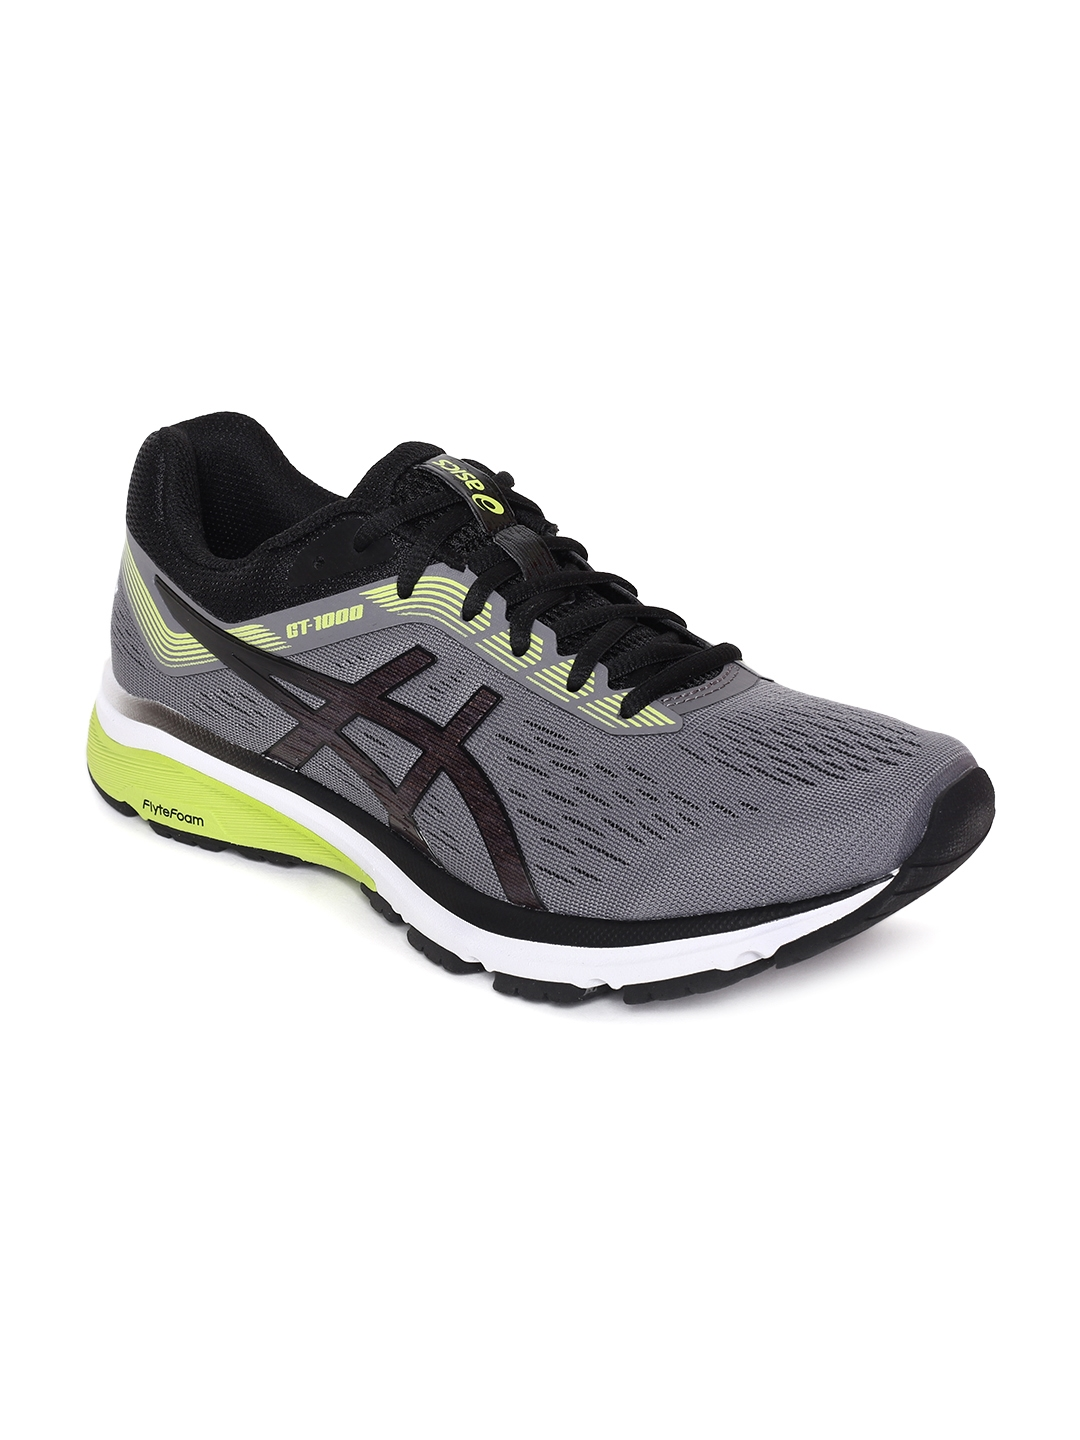 Buy ASICS Men Grey   Black GT 1000 7 Running Shoes - Sports Shoes ... 423f58d75